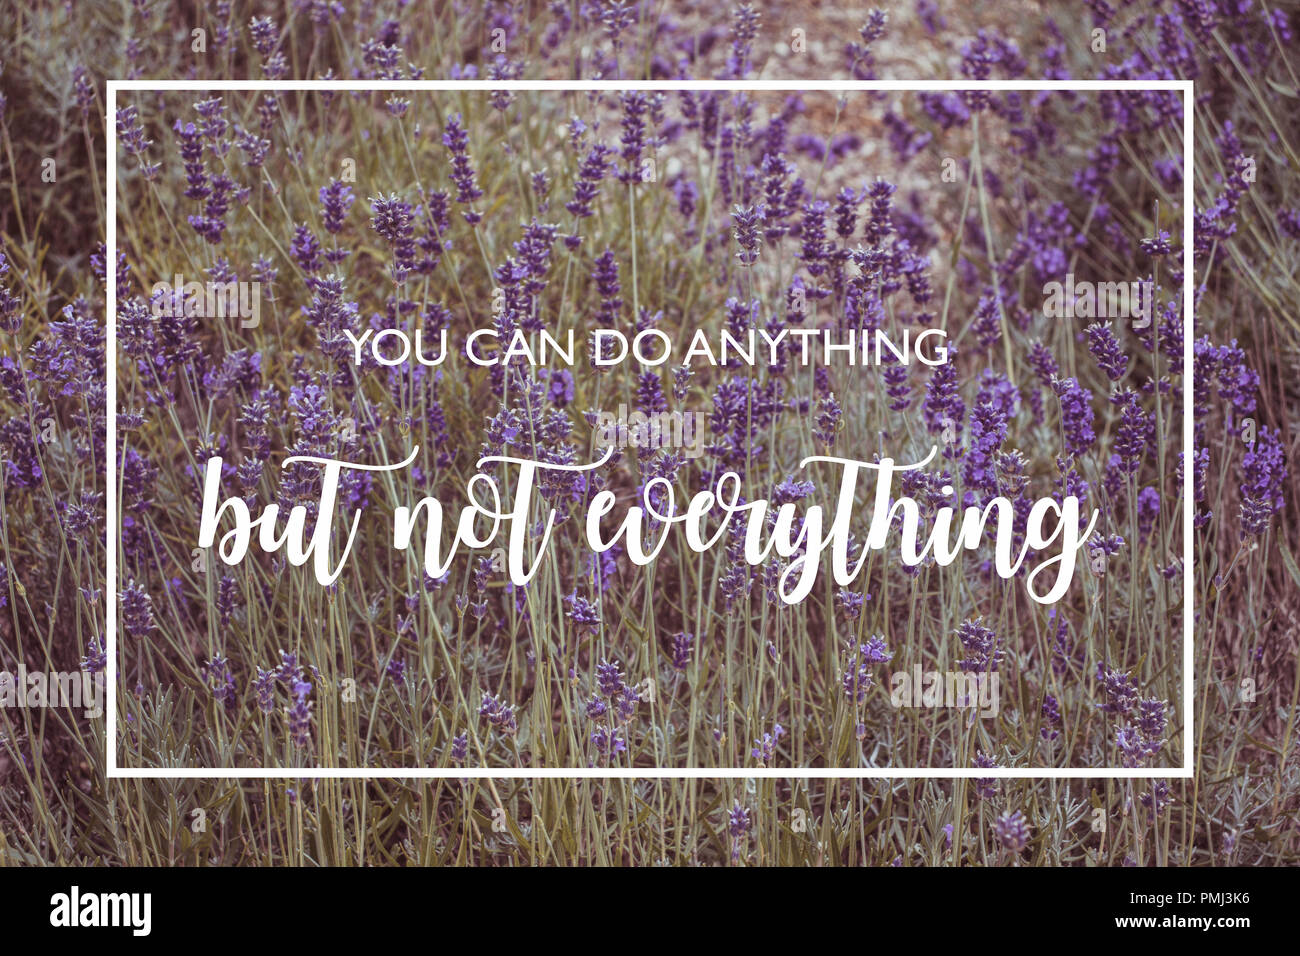 You can do anything but not everything - motivational quote on lavender fields - Stock Image